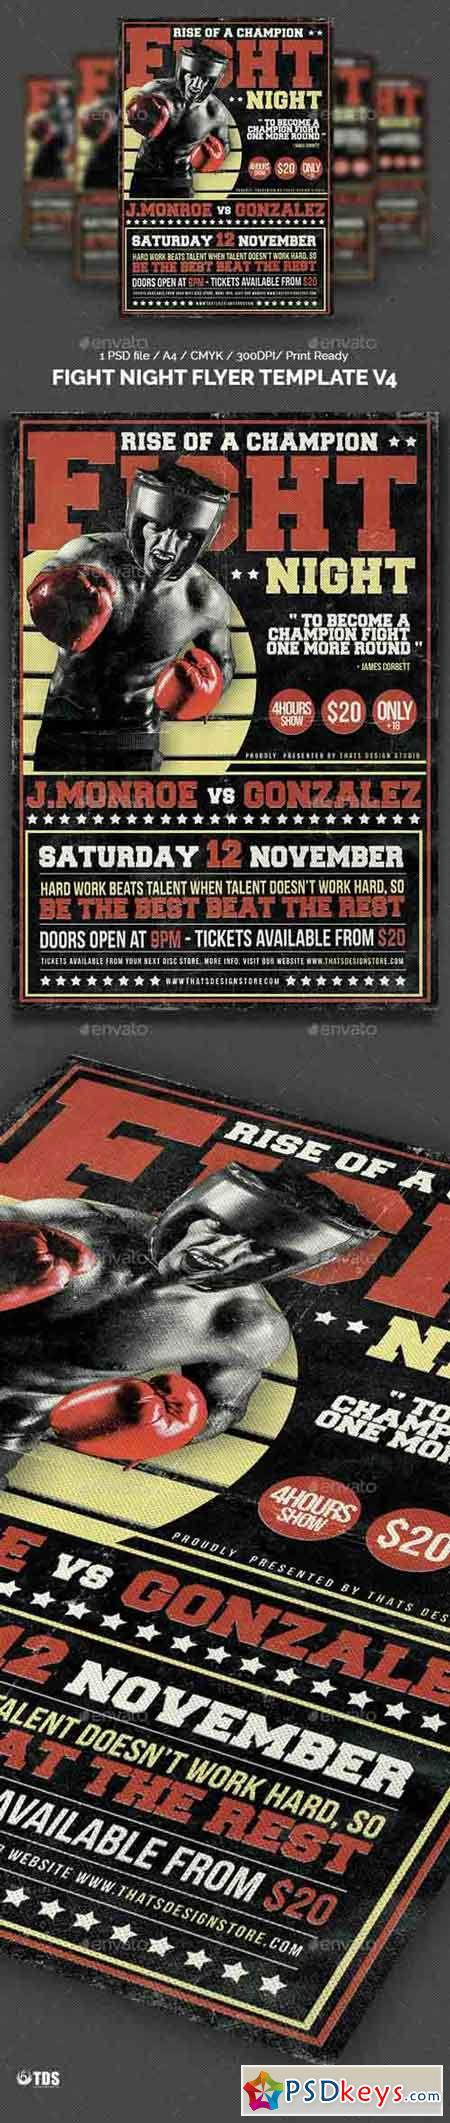 Fight Night Flyer Template V4 14428508